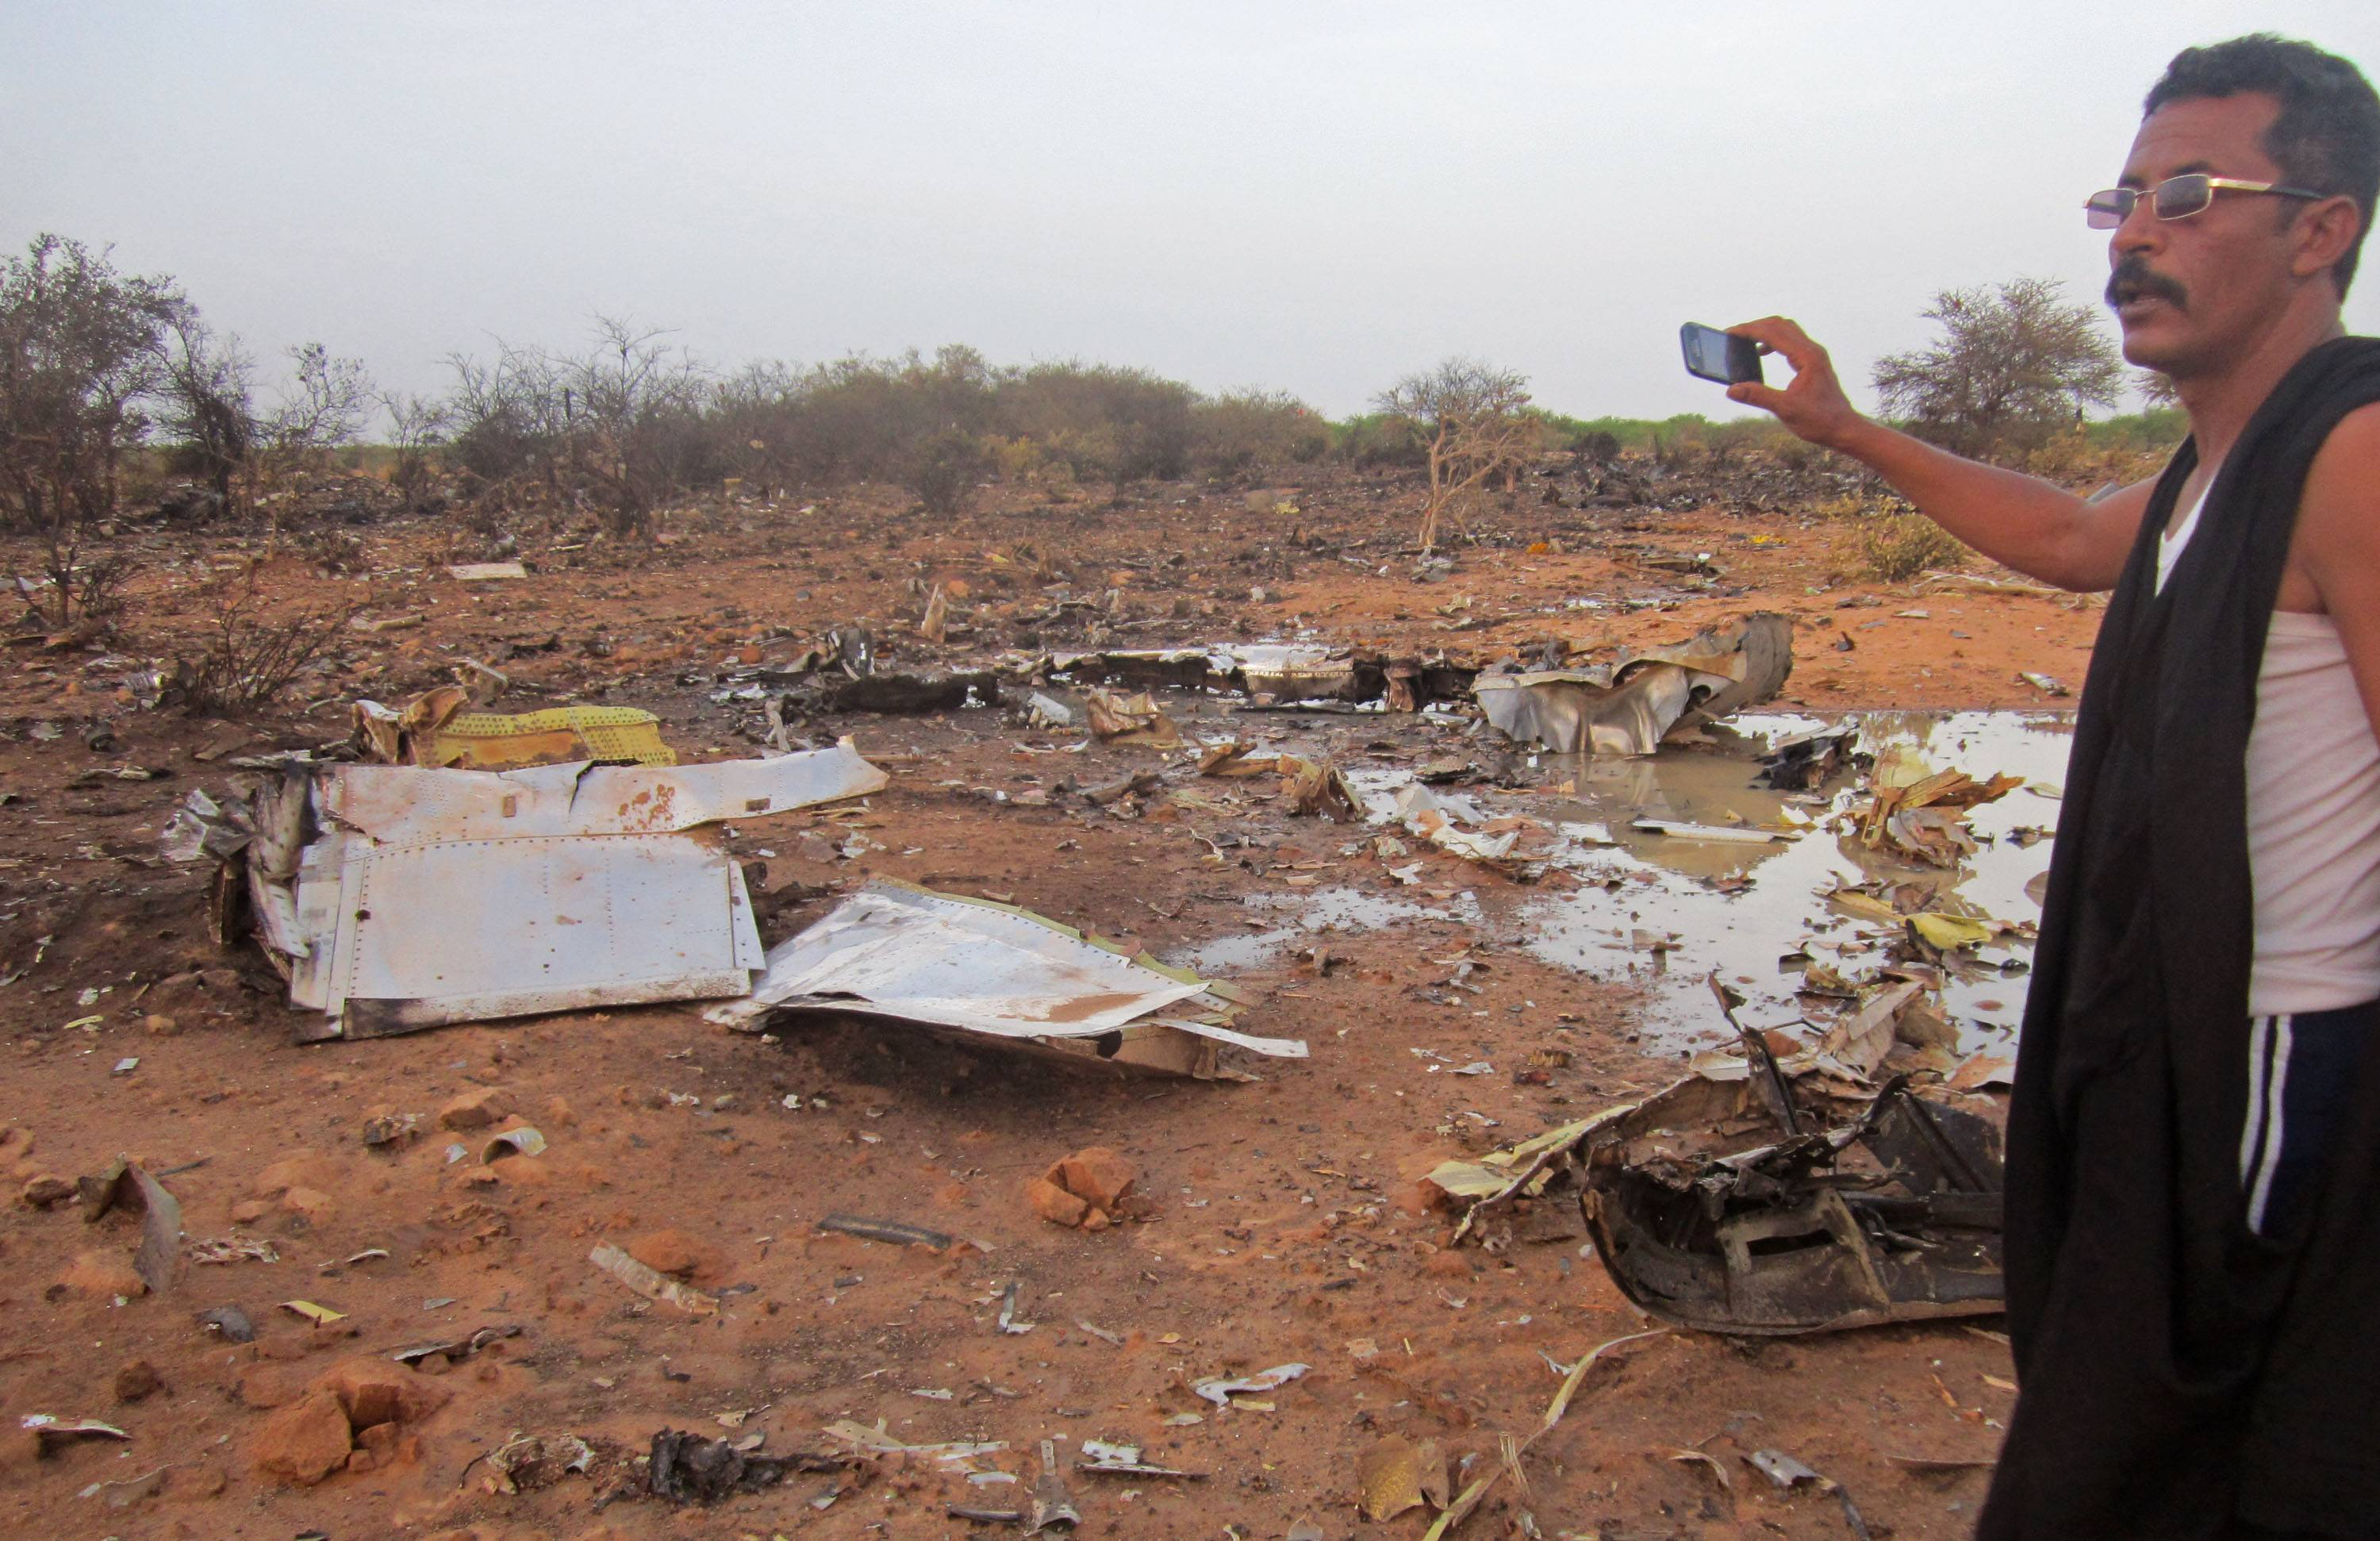 This photo provided on Friday, by the Burkina Faso Military shows a man at the site of the plane crash in Mali. French soldiers secured a black box from the Air Algerie wreckage site in a desolate region of restive northern Mali on Friday, the French president said. Terrorism hasn't been ruled out as a cause, although officials say the most likely reason for the catastrophe that killed all onboard is bad weather. At least 116 people were killed in Thursday's disaster, nearly half of whom were French.